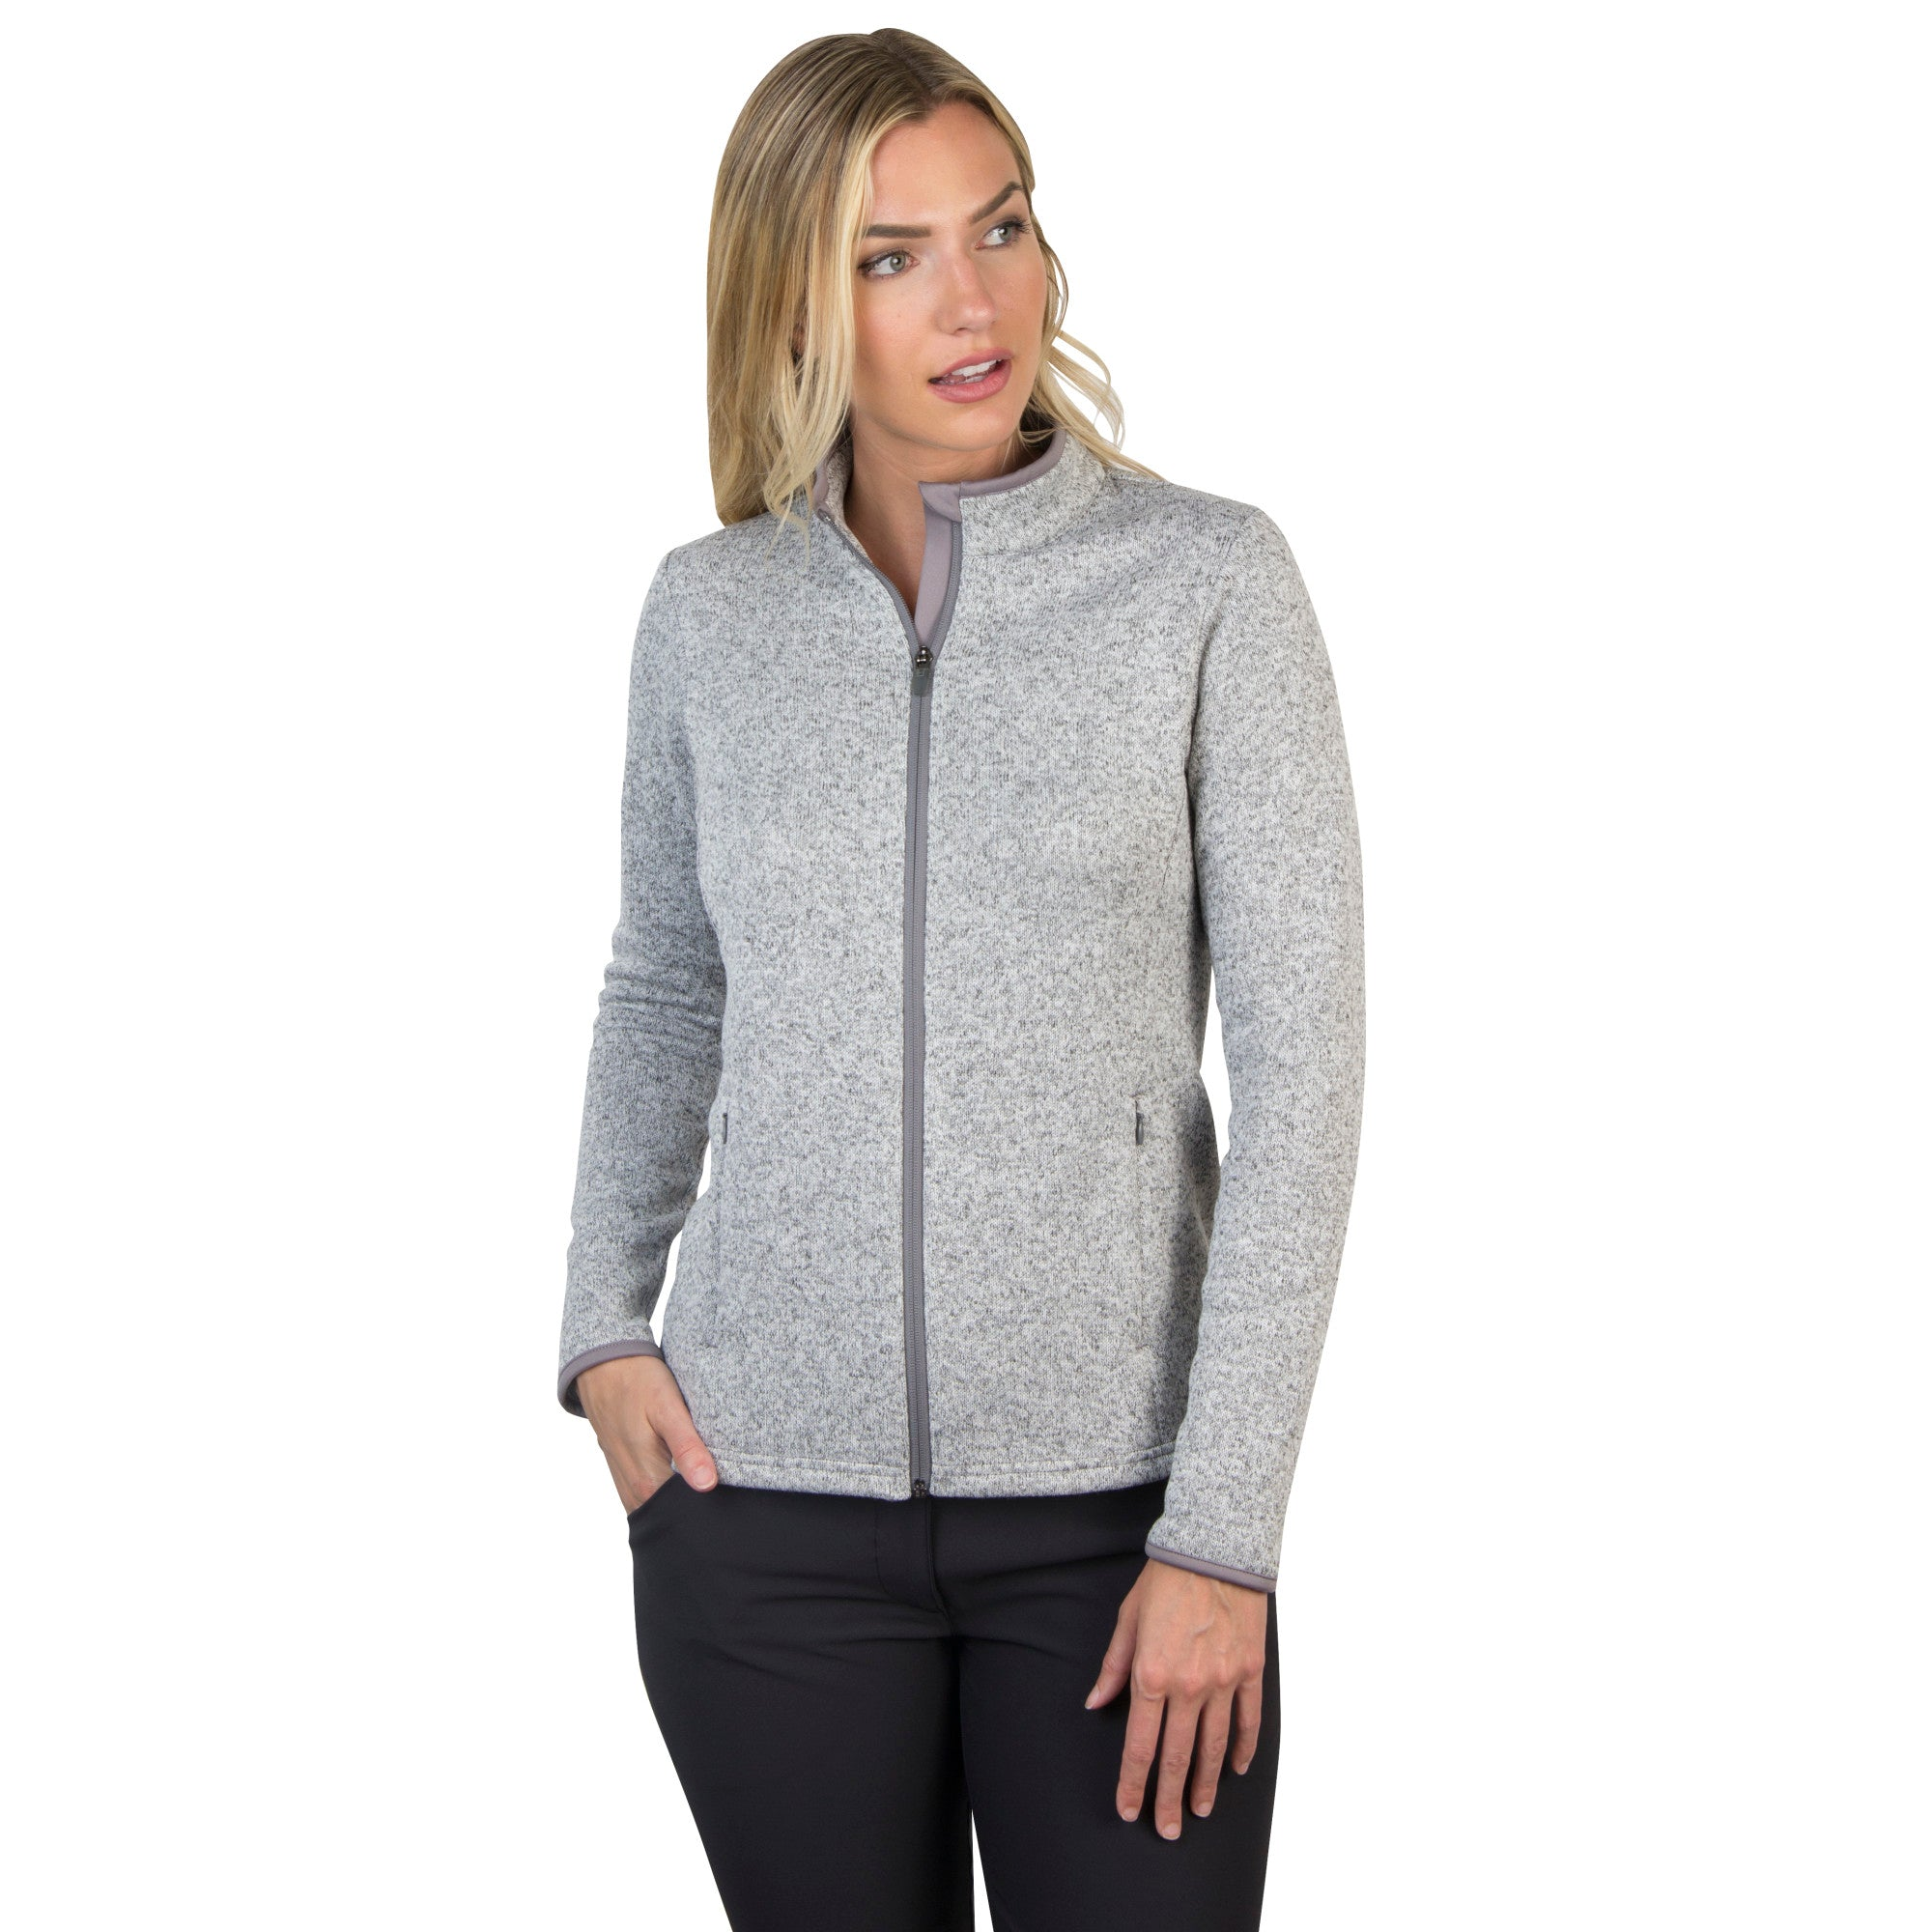 Antigua Women's Clover Jacket- A104408